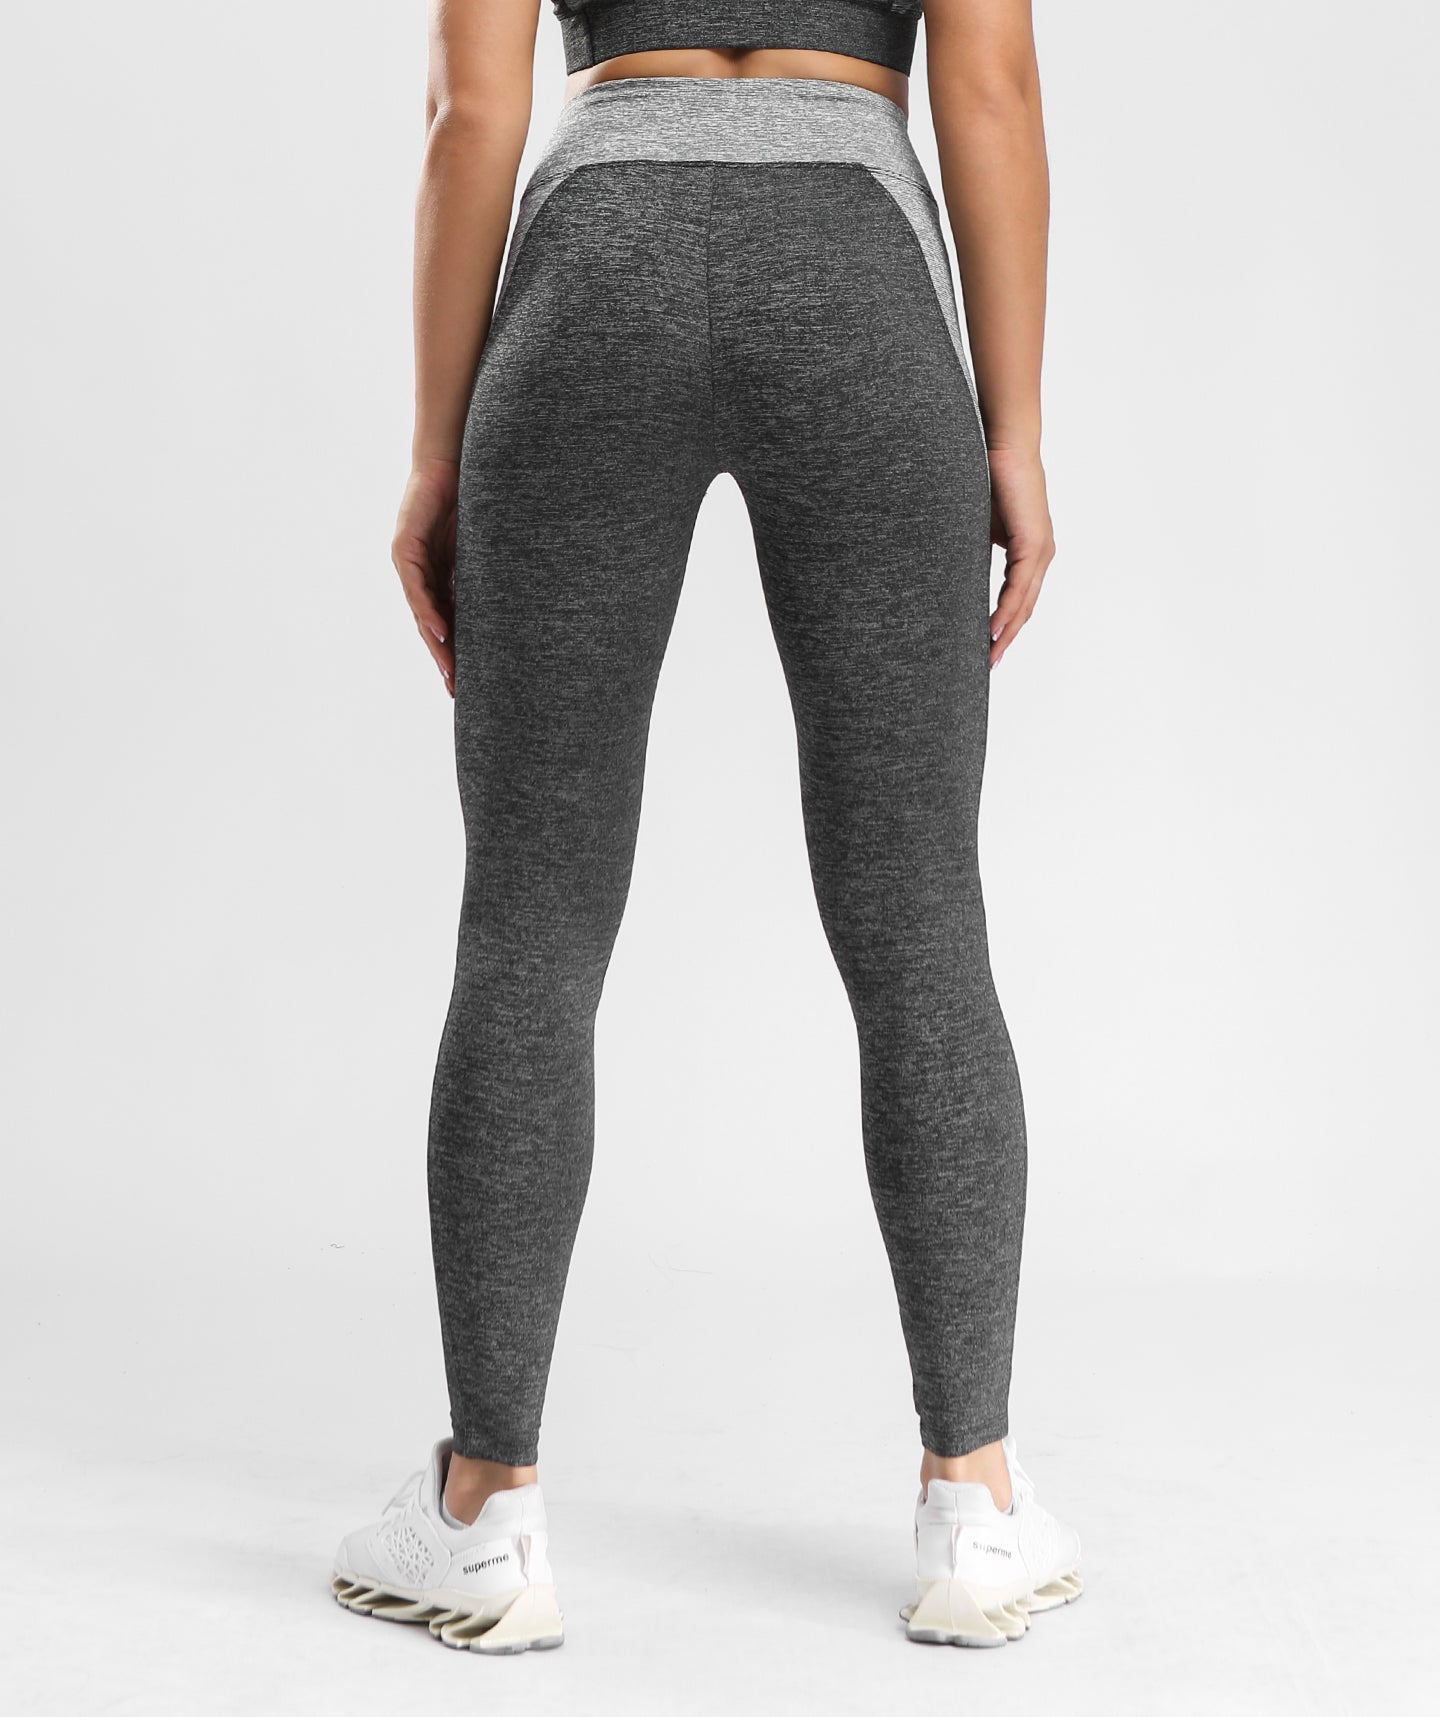 Inside Glamour Side Contrast Sports Leggings - Black